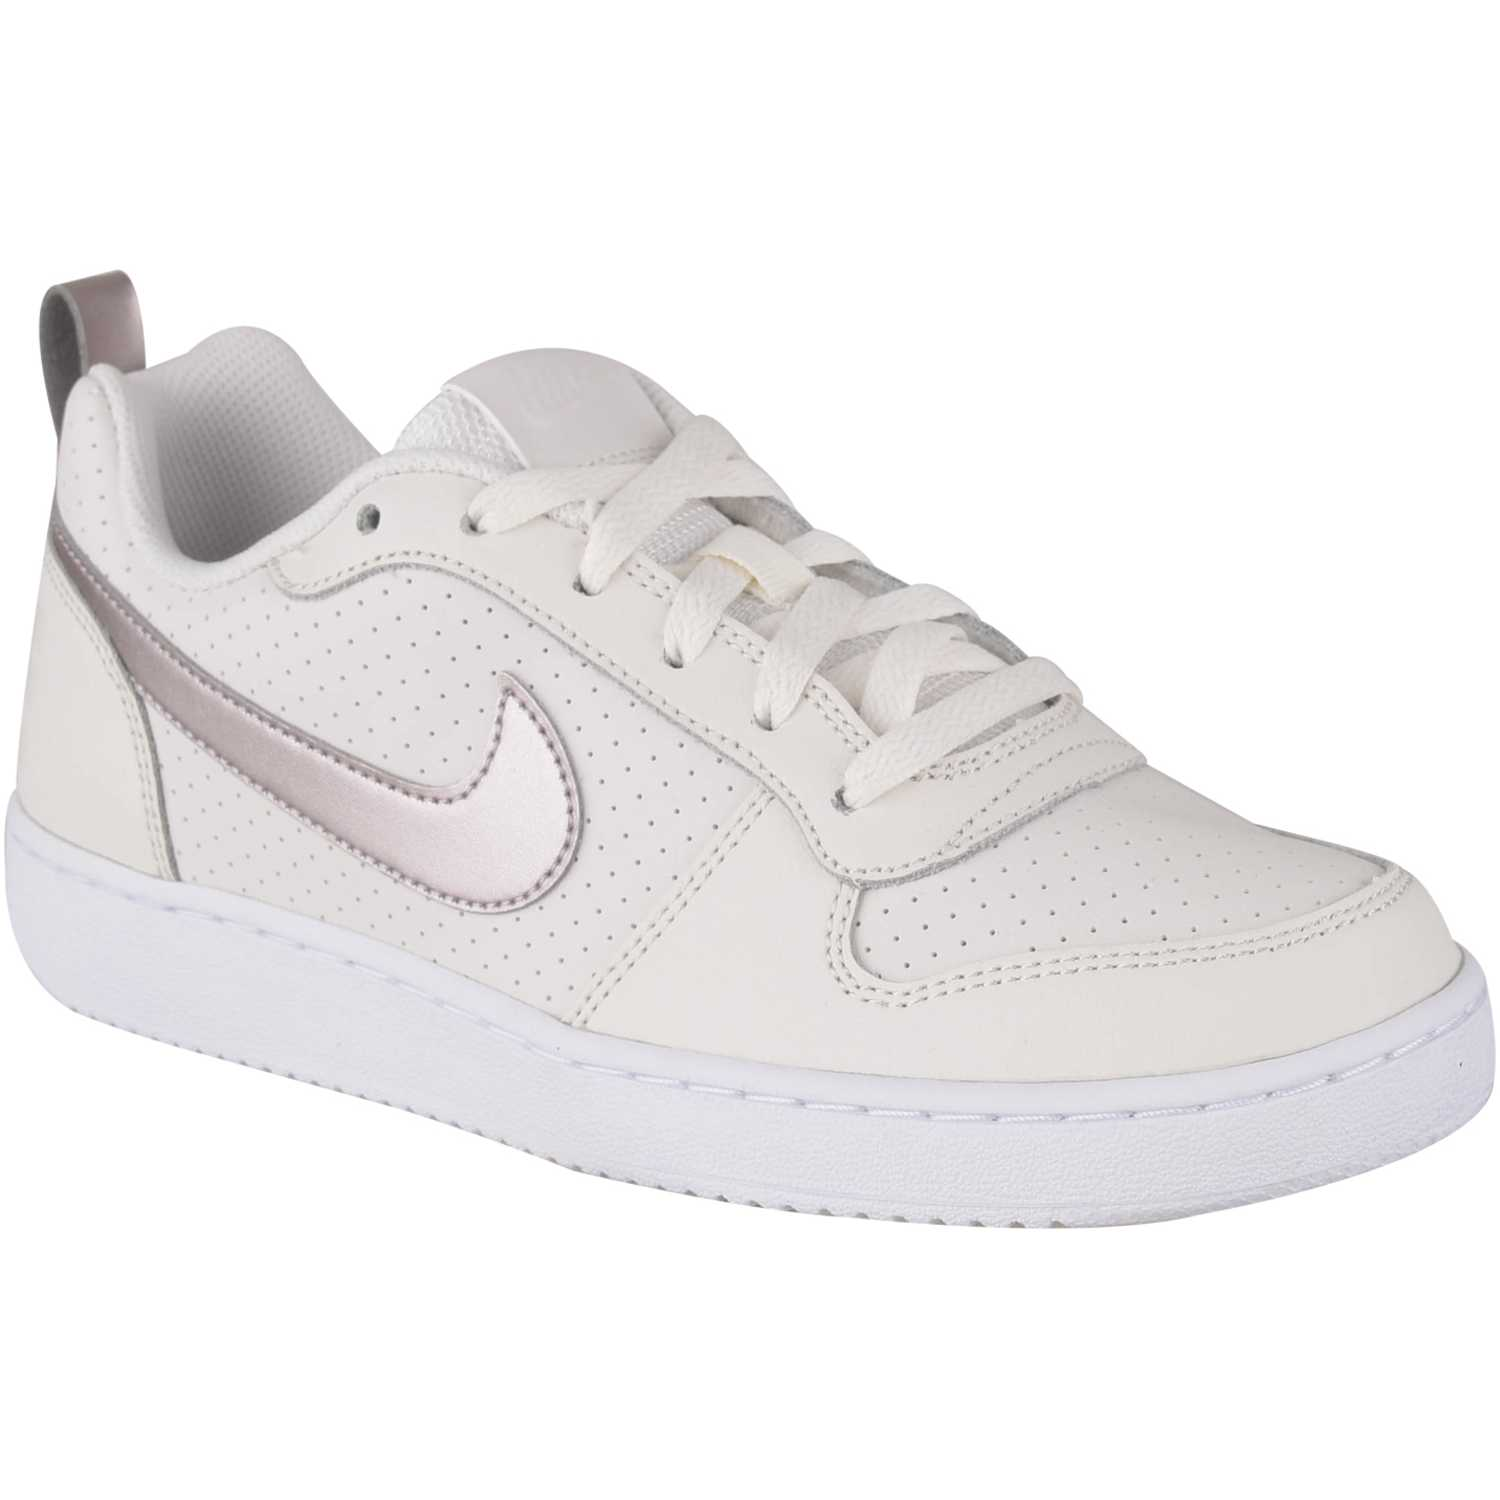 análisis Por qué no bibliotecario  Nike nike court borough low gg Beige Walking | platanitos.com